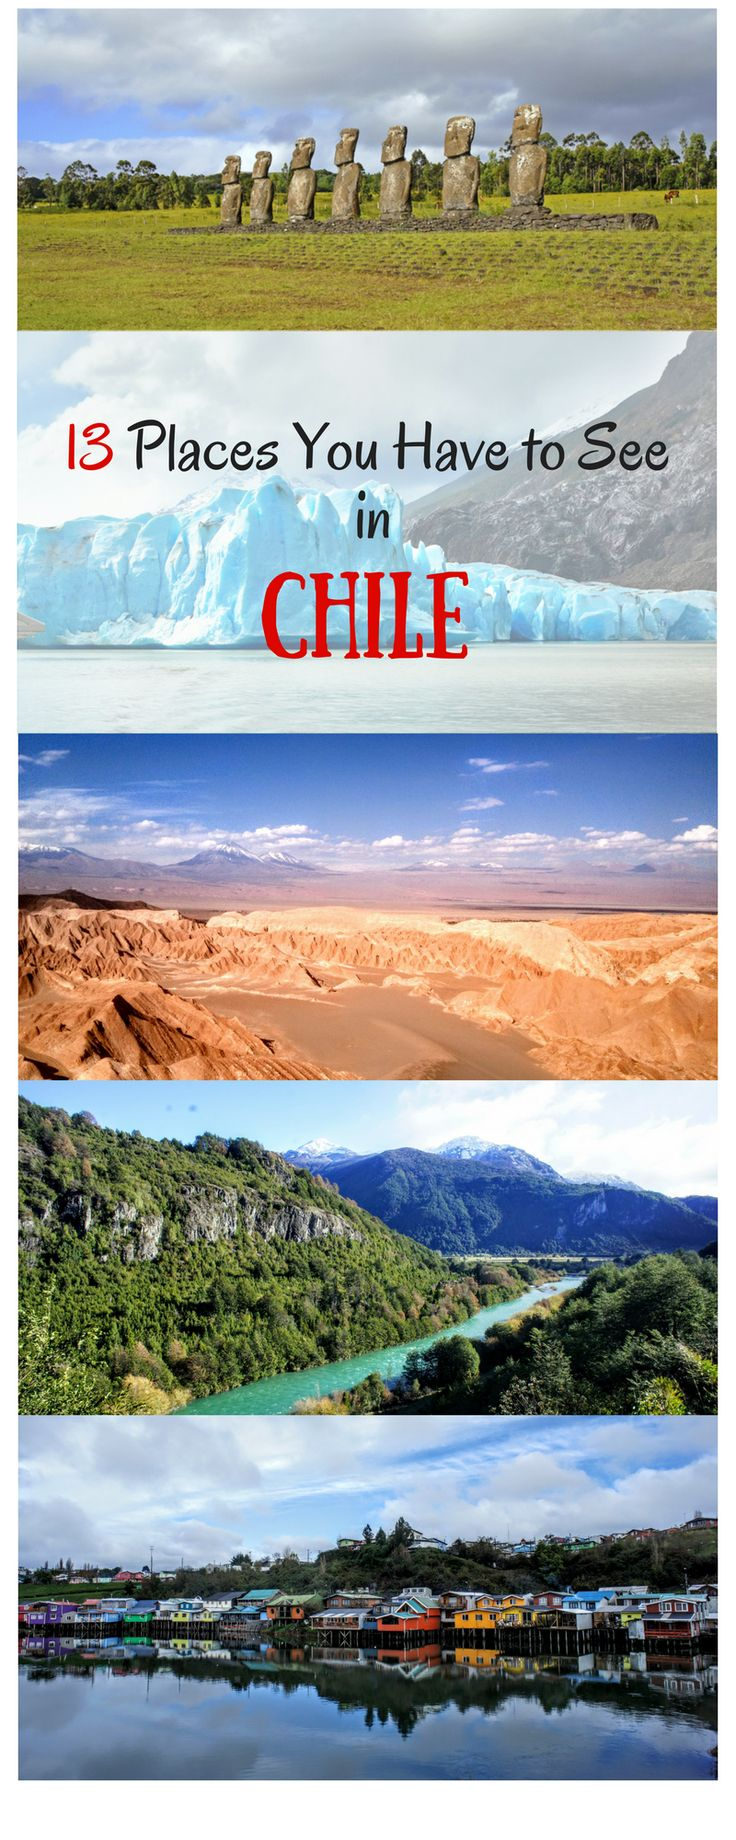 Must sees in Chile - Tap the link to see the newly released survival and traveling gear for all types of travelers! :D #TRAVELARSENAL